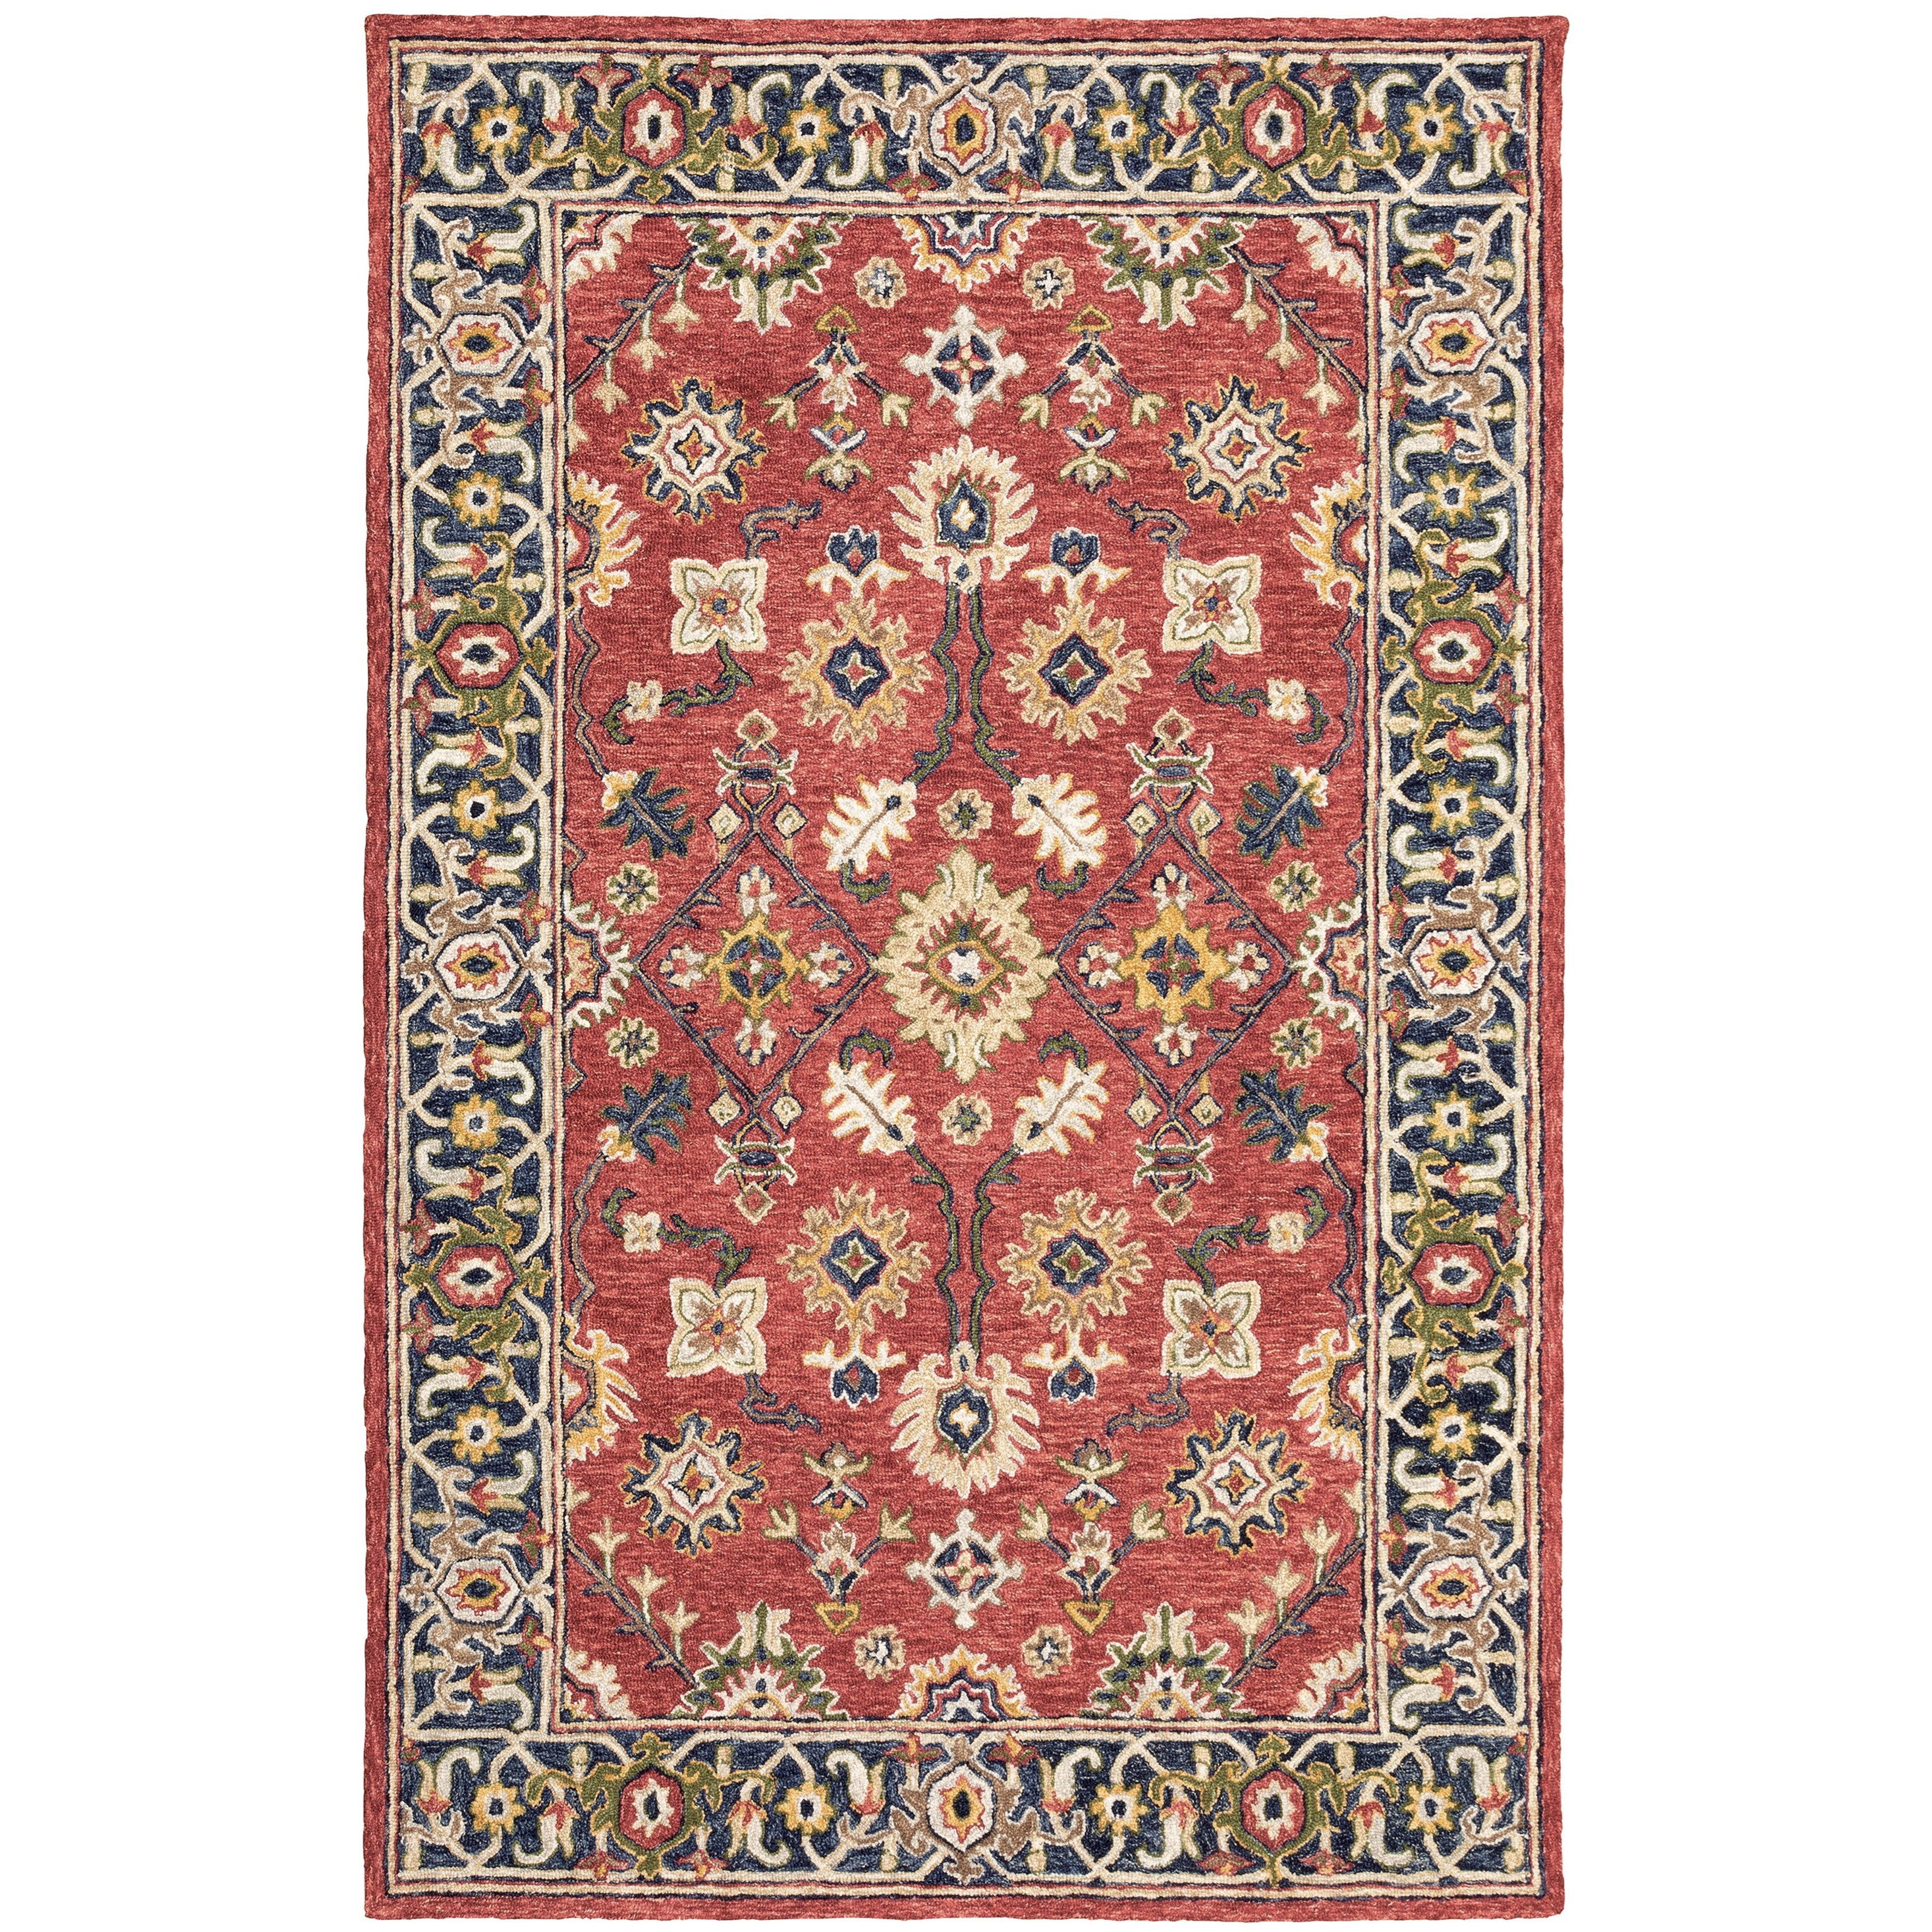 Alfresco 8' X 10' Rectangle Rug by Oriental Weavers at Steger's Furniture